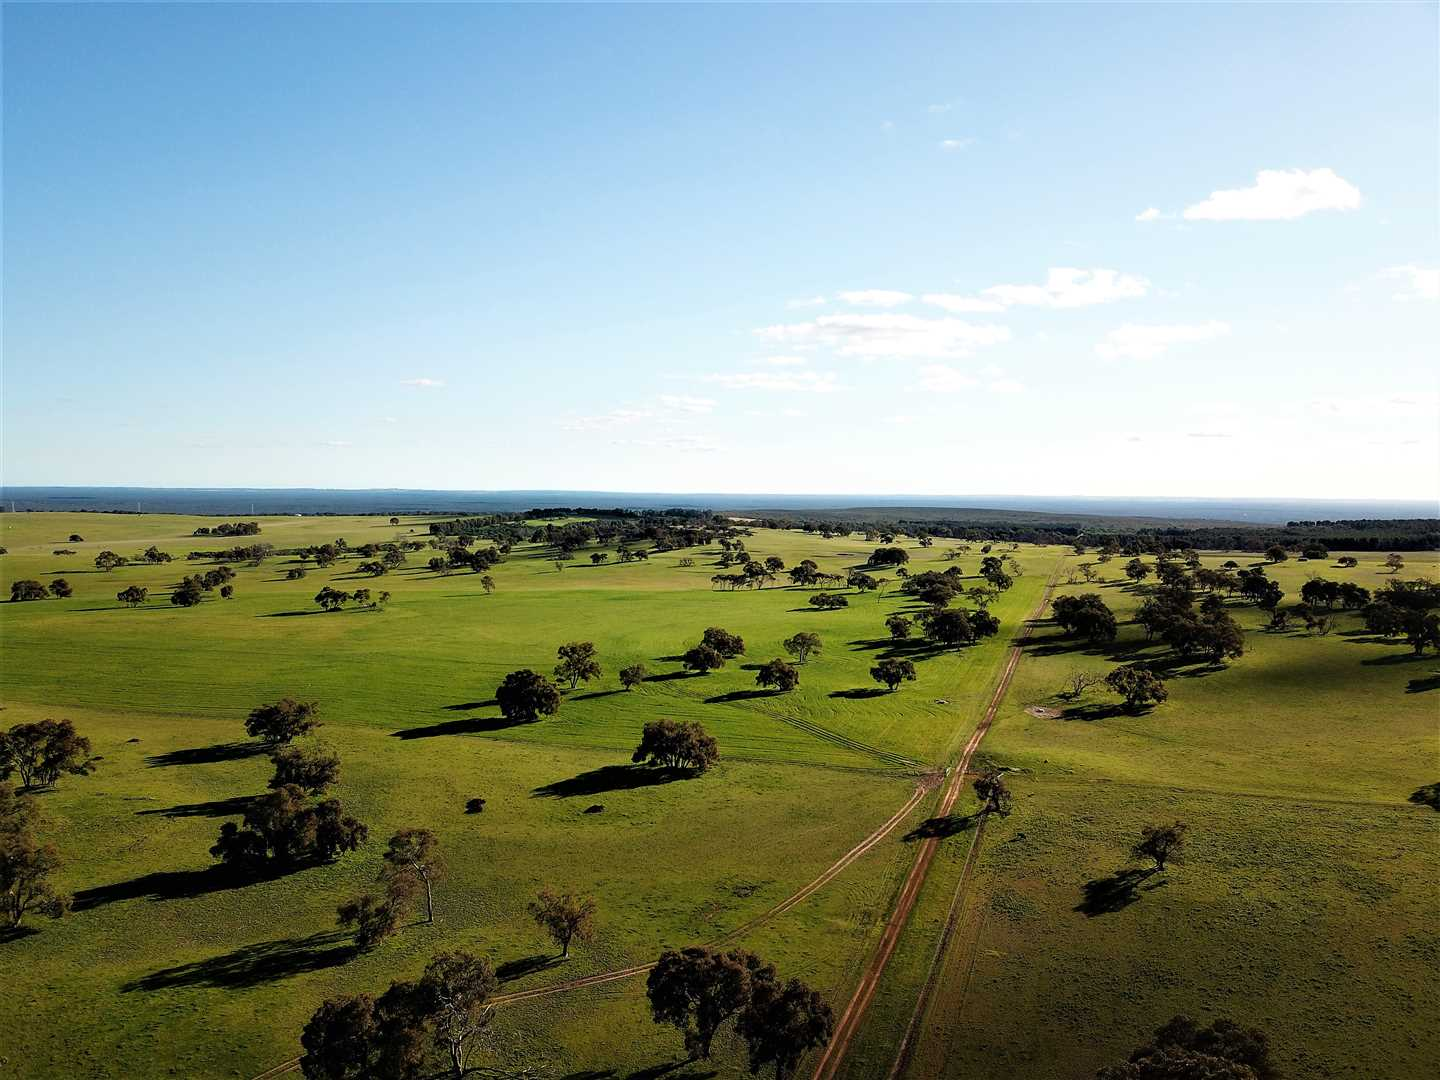 Drone facing West, looking towards the coast 40kms away approx